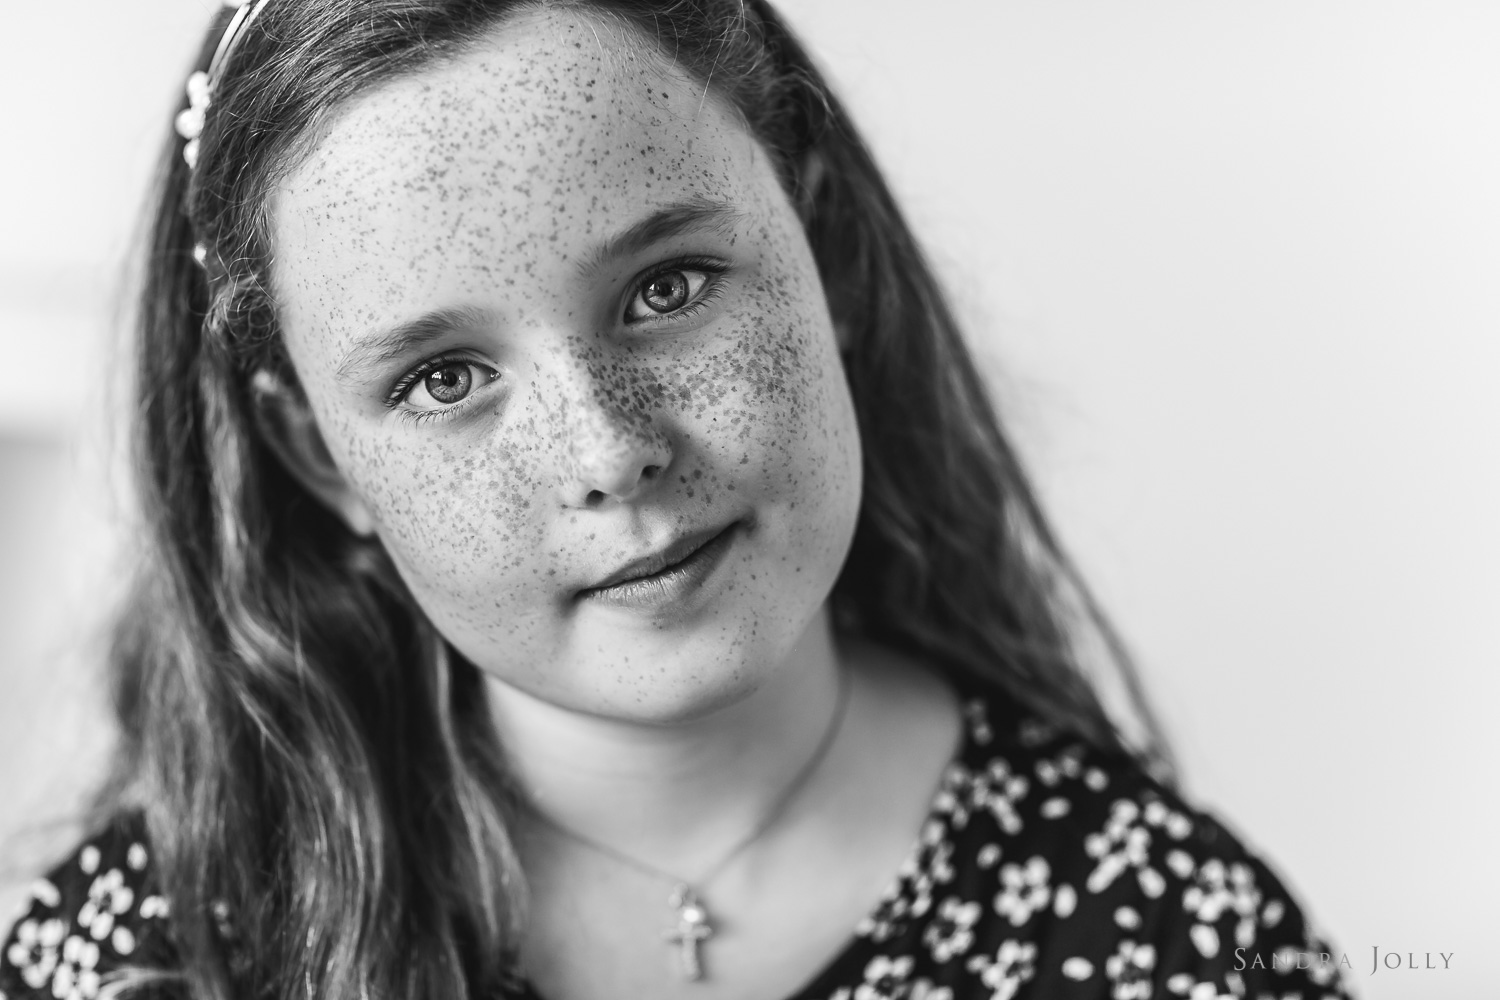 tween-girl-with-freckles-by-Stockholm-family-photographer-Sandra-Jolly.jpg